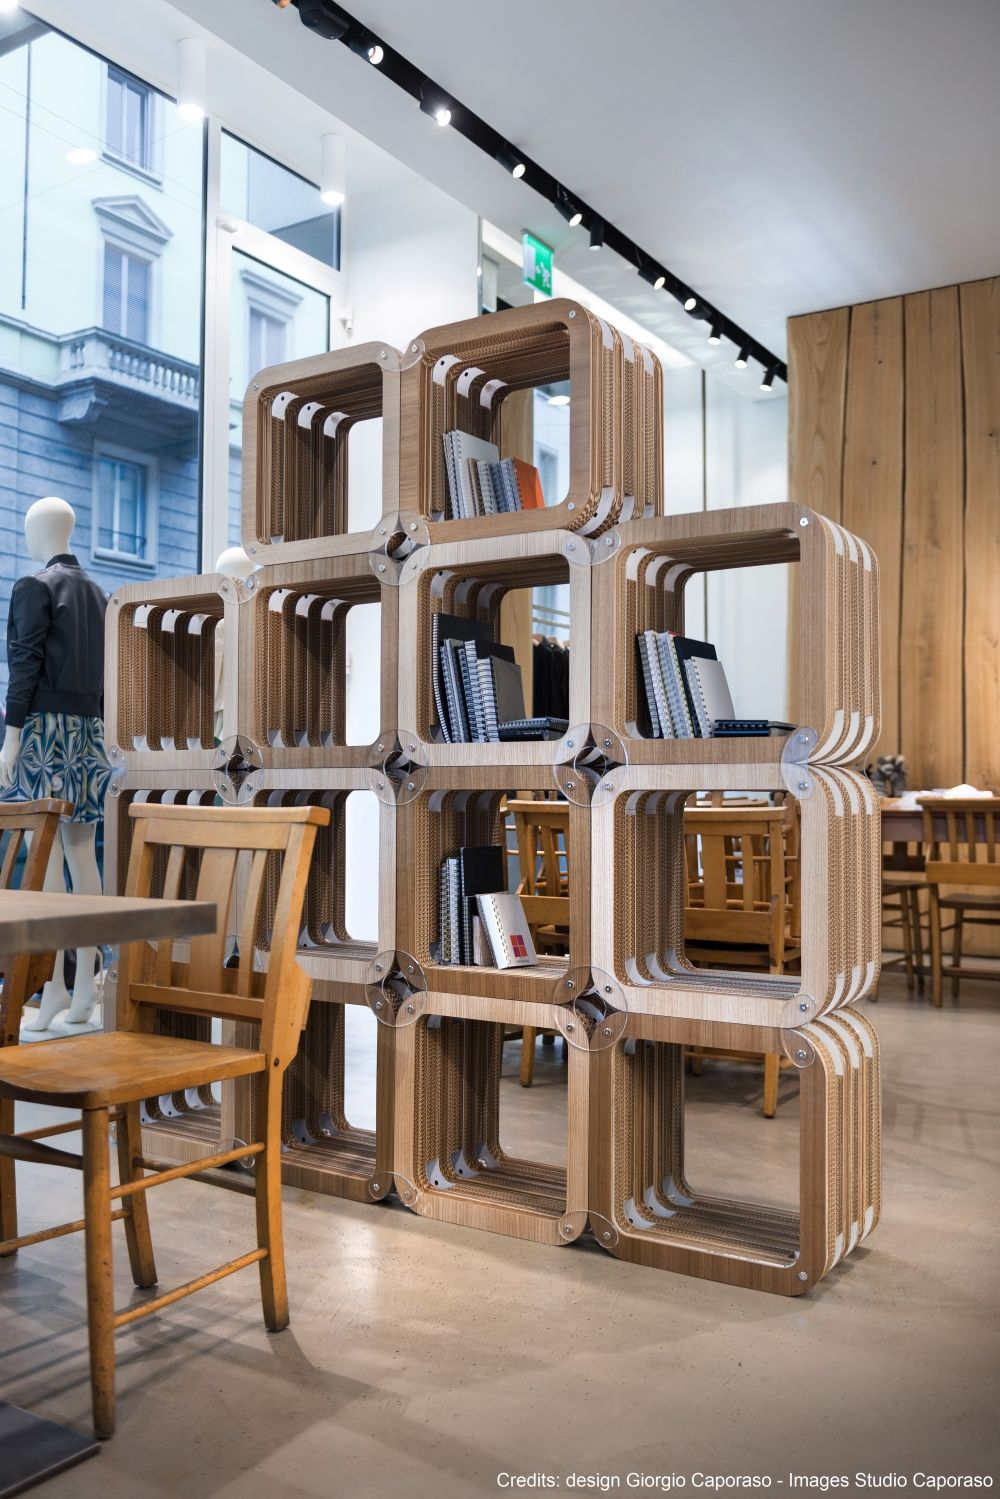 Design Concepts Furniture furniture concepts by lime studio Cardboard Furniture Cardboard Modular Shelving By Giorgio Caporaso For Verger Concept Store In Milan